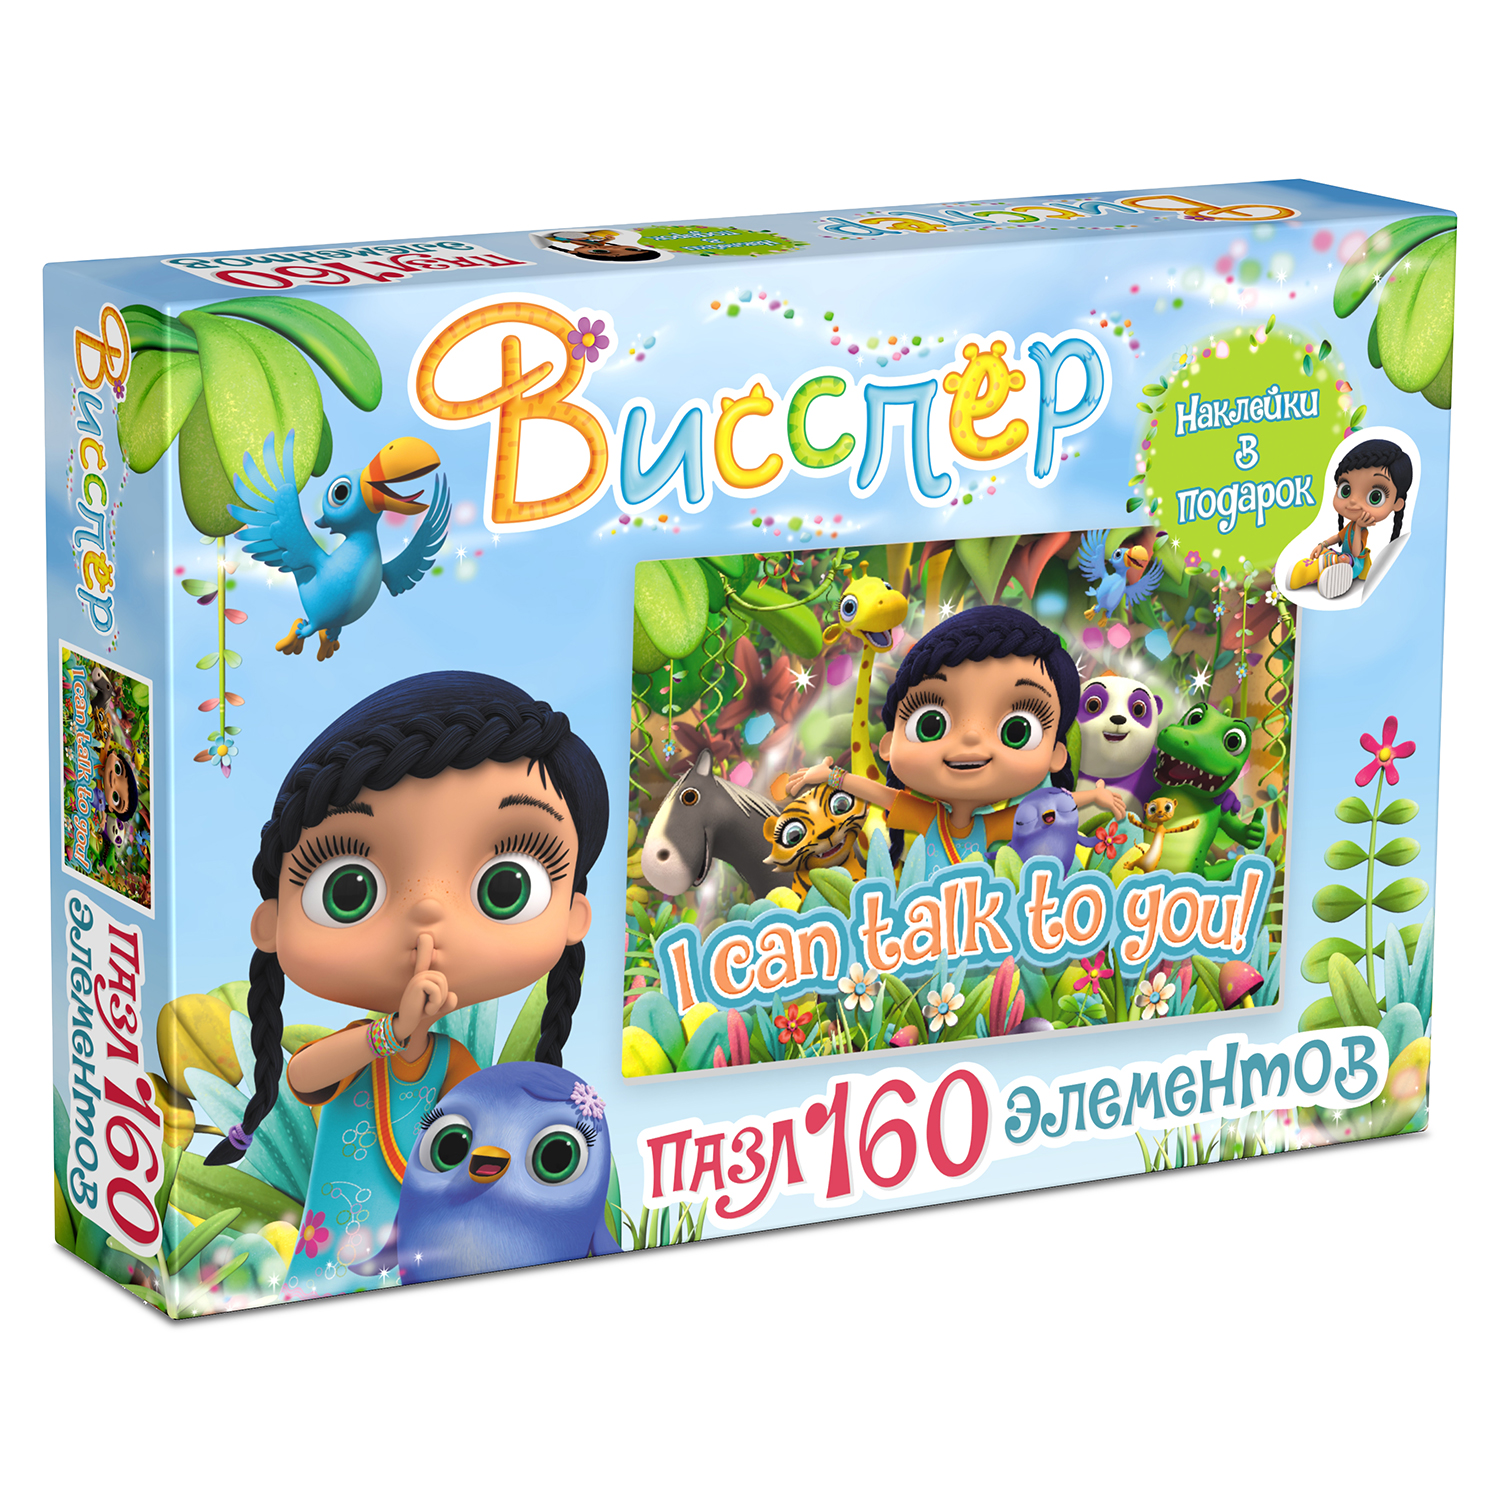 Висспер.Пазл.160Эл. +наклейки.I can talk to you.03591 children intelligence simulation can talk baby bath toys